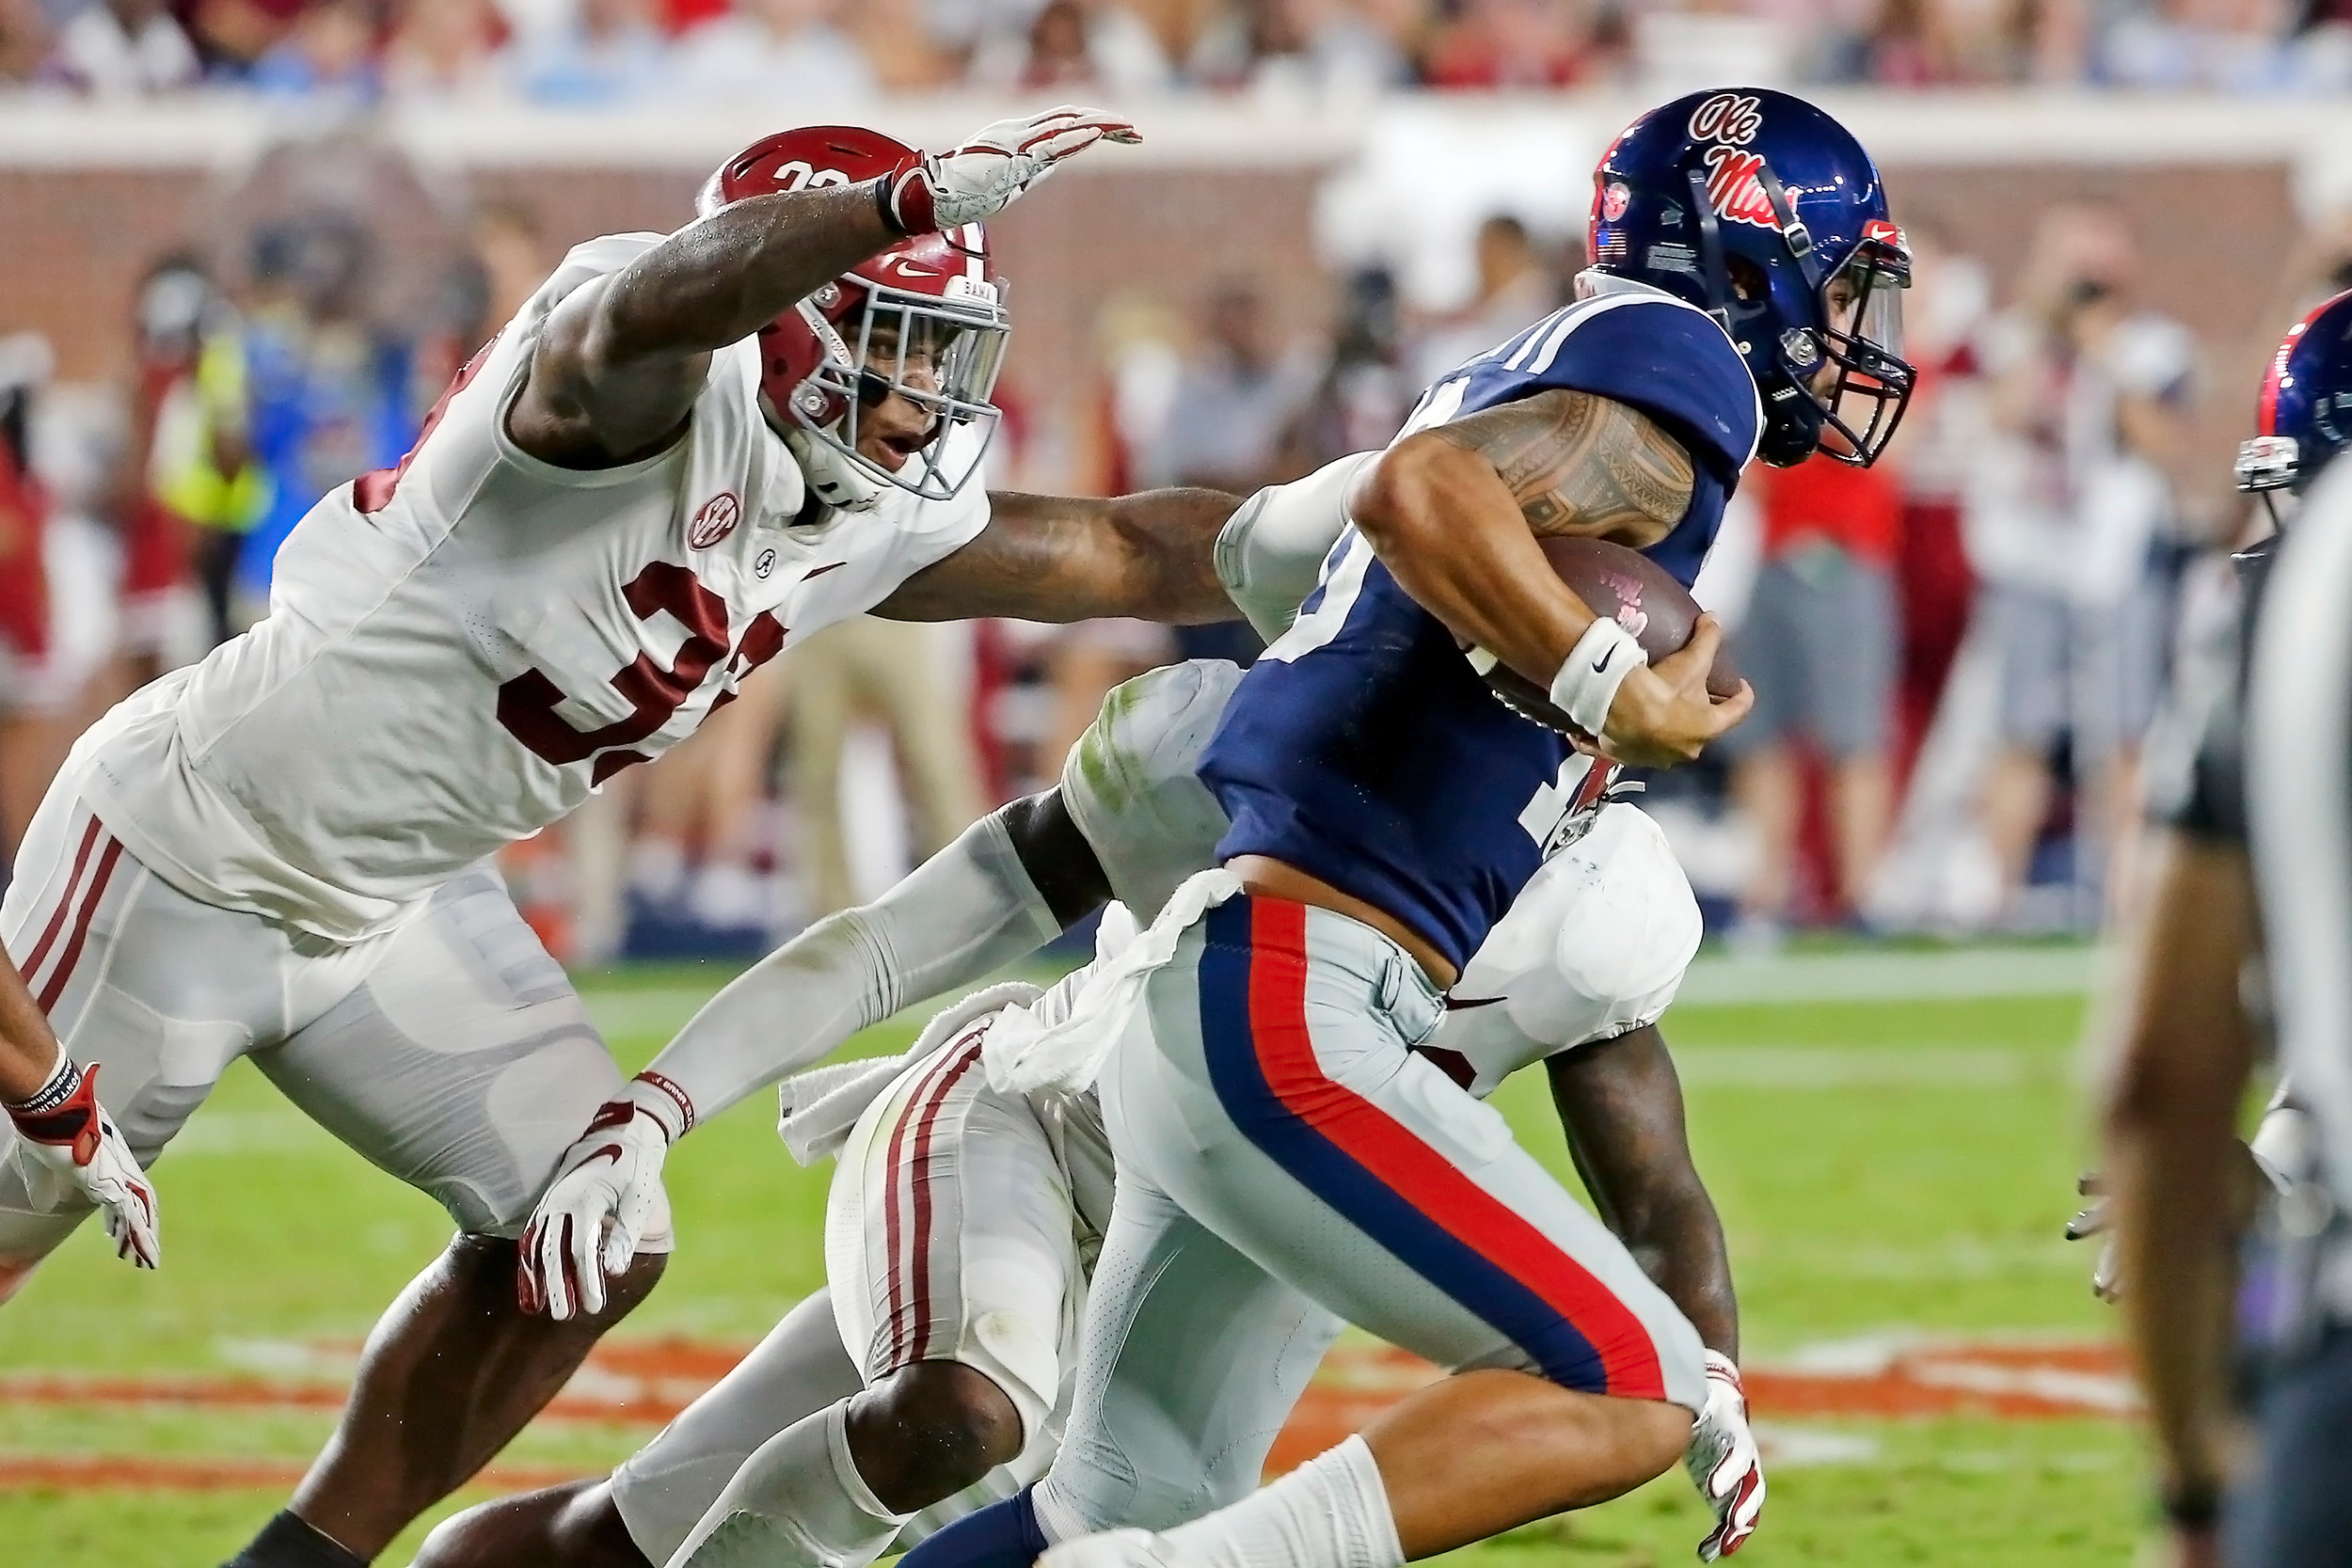 Alabama Crimson Tide linebacker Anfernee Jennings (33) tries to make a tackle during the game between the University of Alabama and Ole Miss at Vaught-Hemingway Stadium. Jason Clark / Daily Mountain Eagle